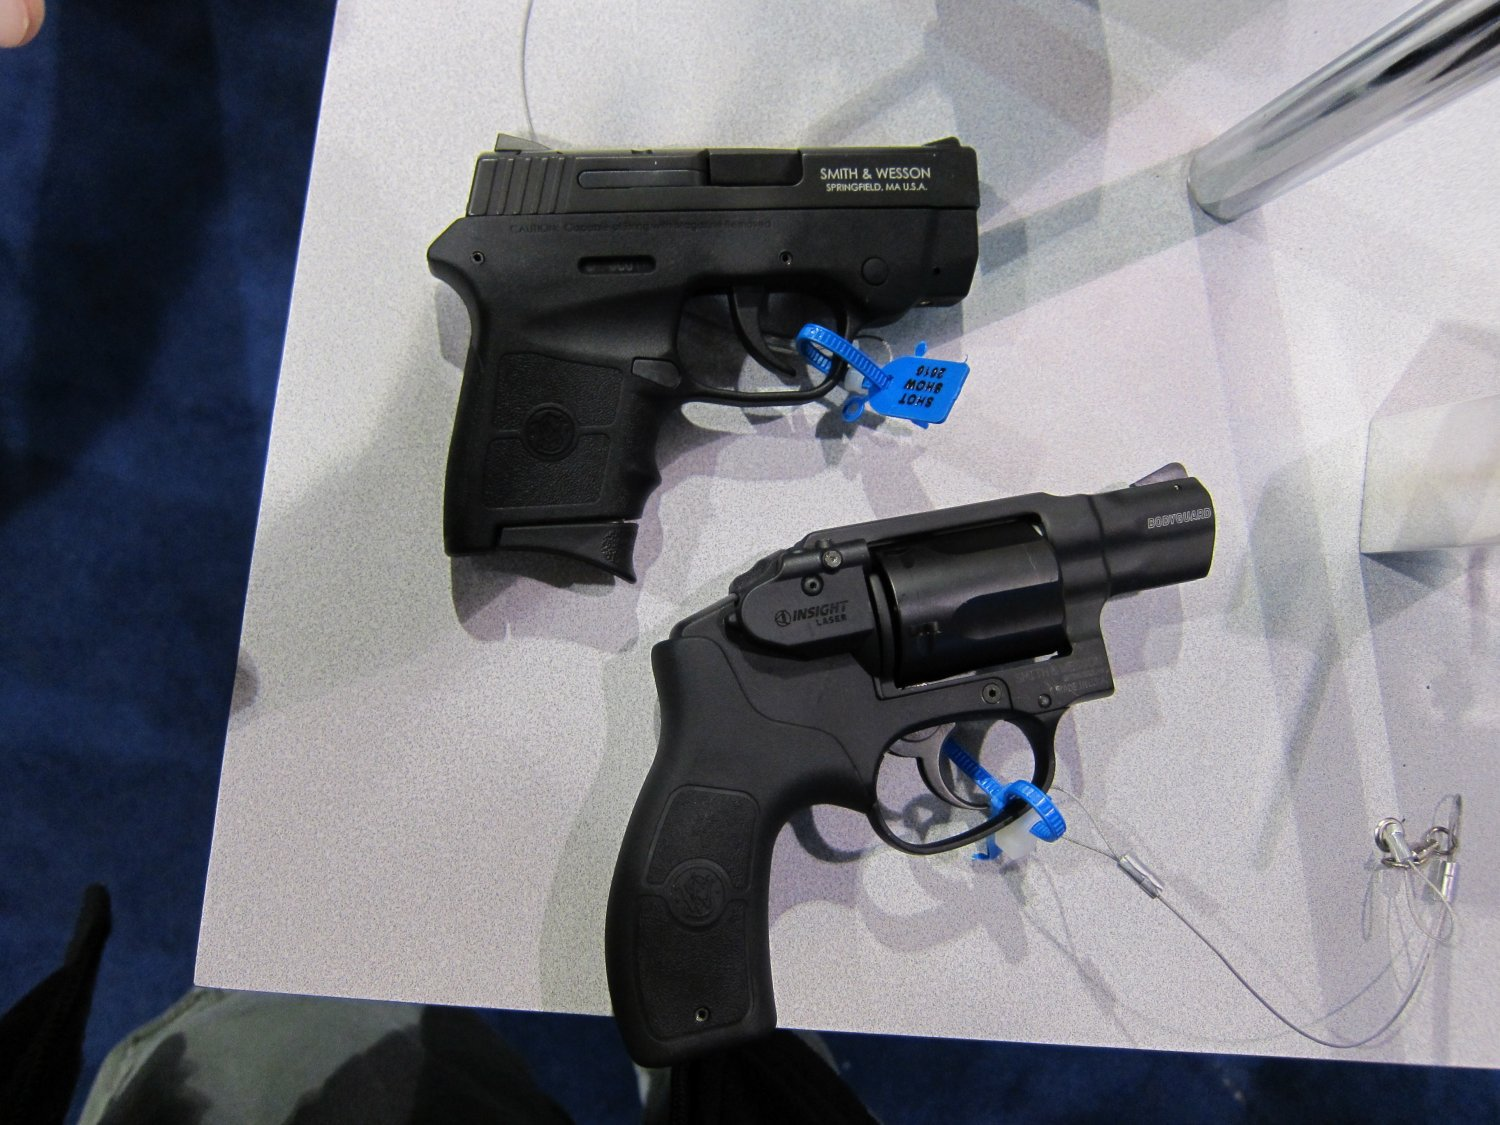 SHOT Show 2010 Smith  Wesson Bodyguard .38 Special Revolver and .380 Pistol 5 Smith & Wesson (S&W) Bodyguard 380 Lightweight Sub Compact .380 ACP Pistol with L3 Insight Technology Laser Sight for Civilian Concealed Carry (CCW) and Law Enforcement Officer (LEO) Back Up Use